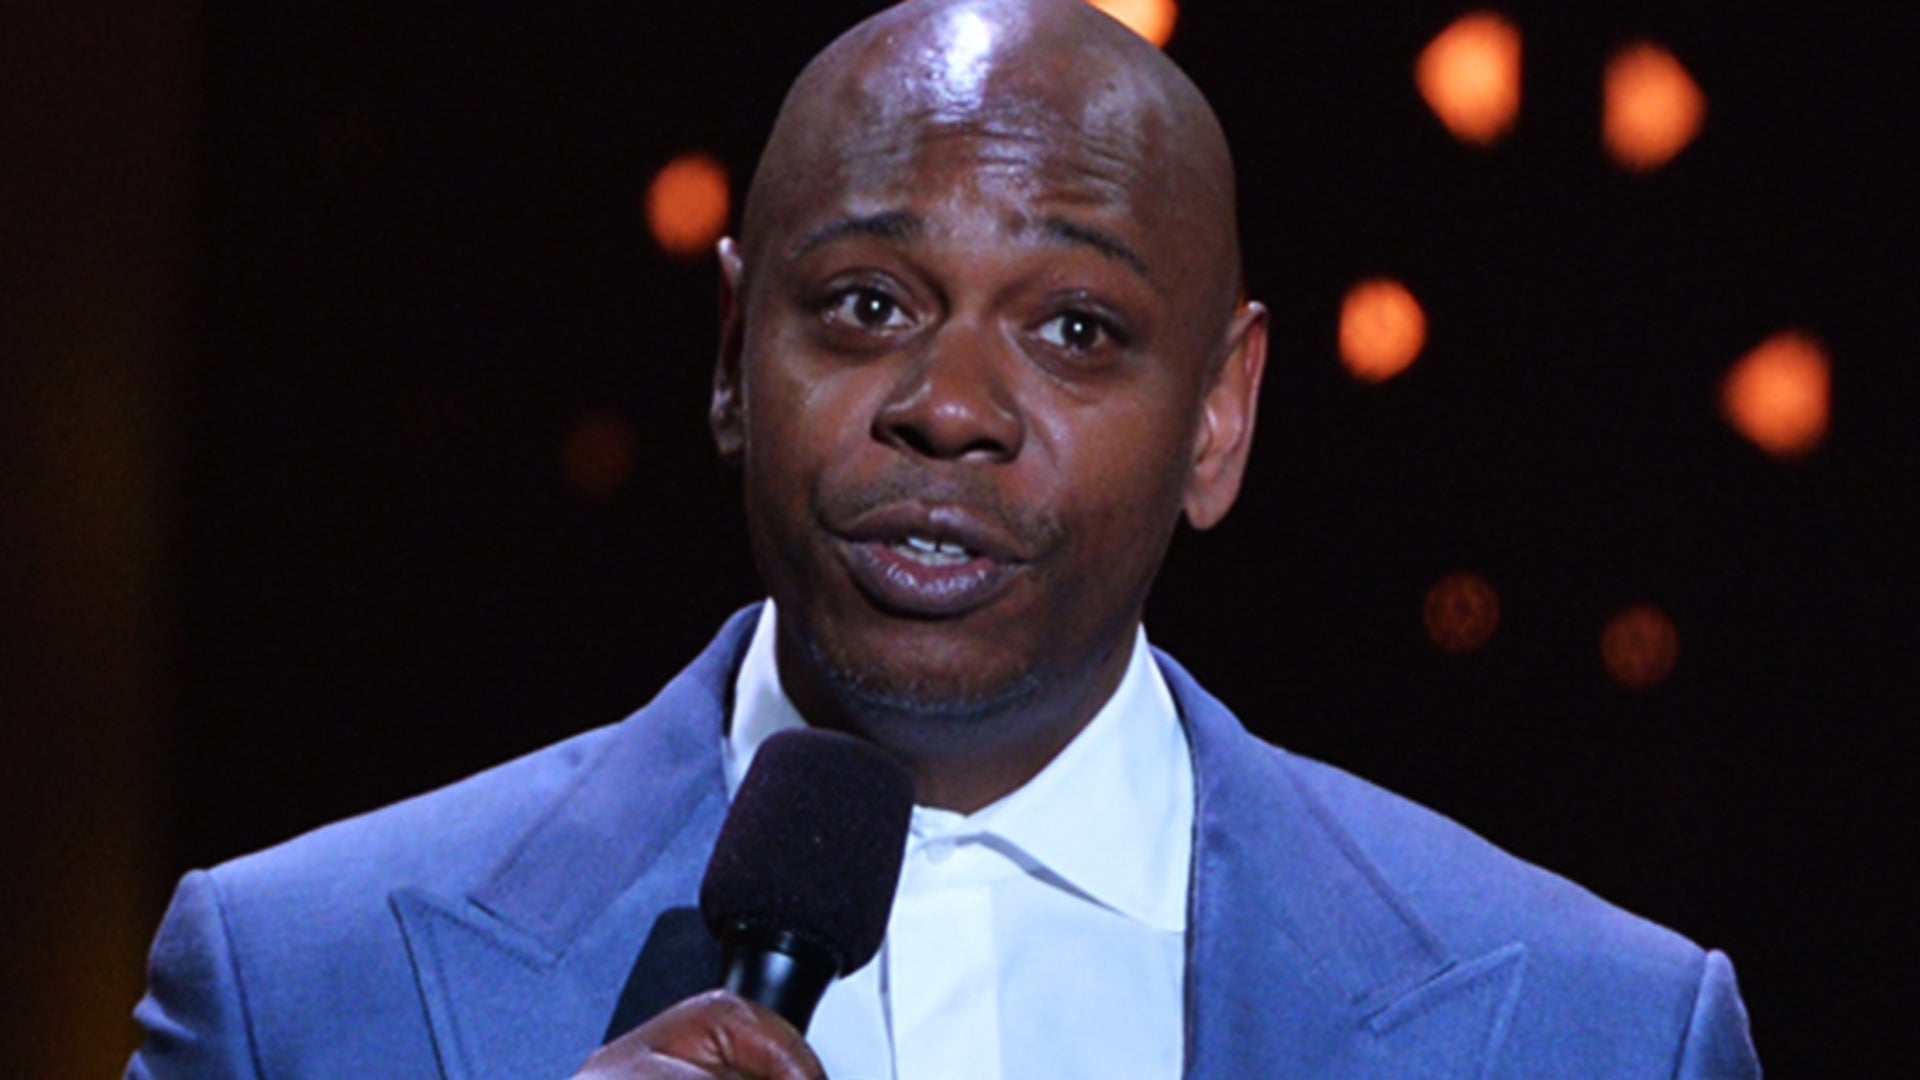 Dave Chappelle Addresses Trans Community Controversy